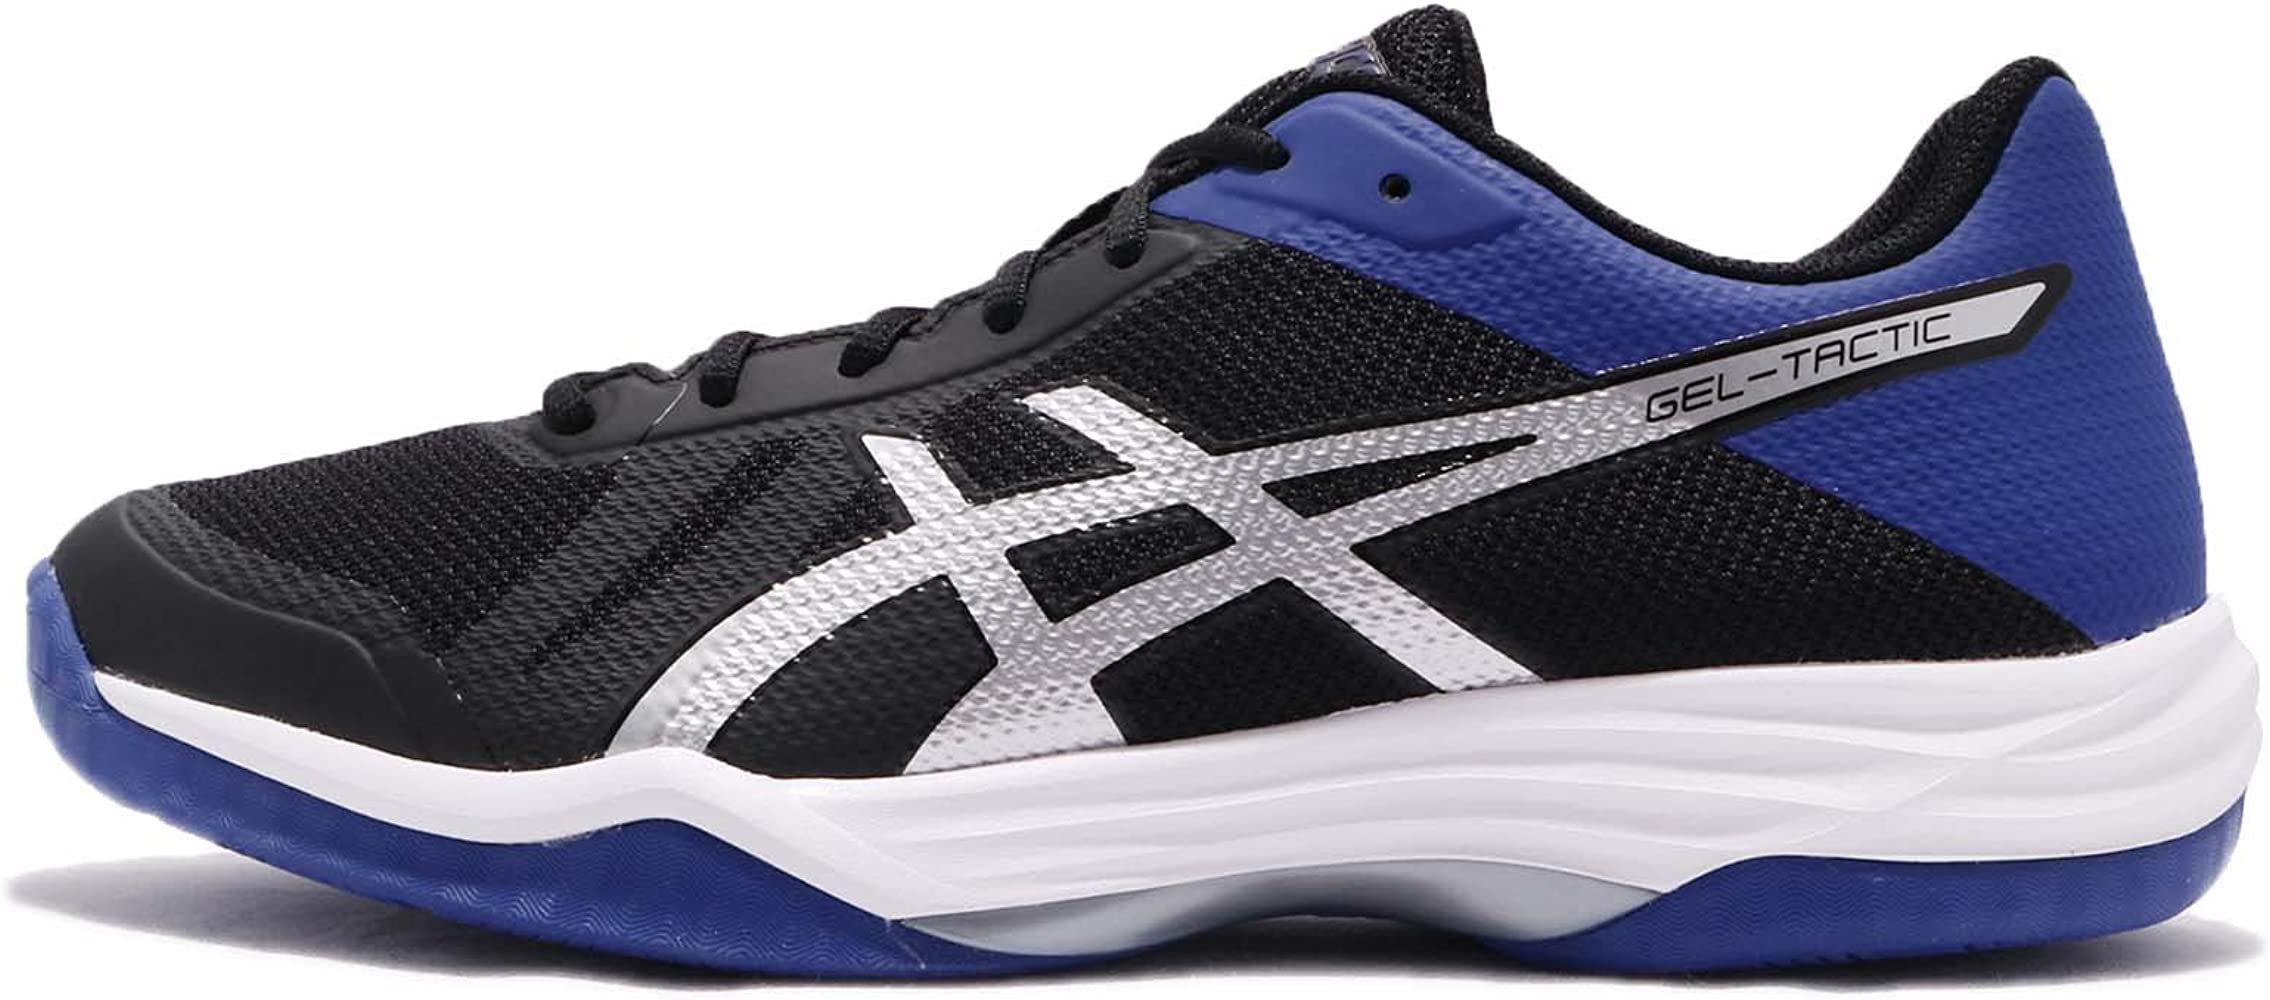 Amazon Com Asics Gel Tactic Mens Volleyball Trainers B702n Sneakers Shoes Uk 6 5 Us 7 5 Eu 40 5 Black Blue Silver 9045 Shoes